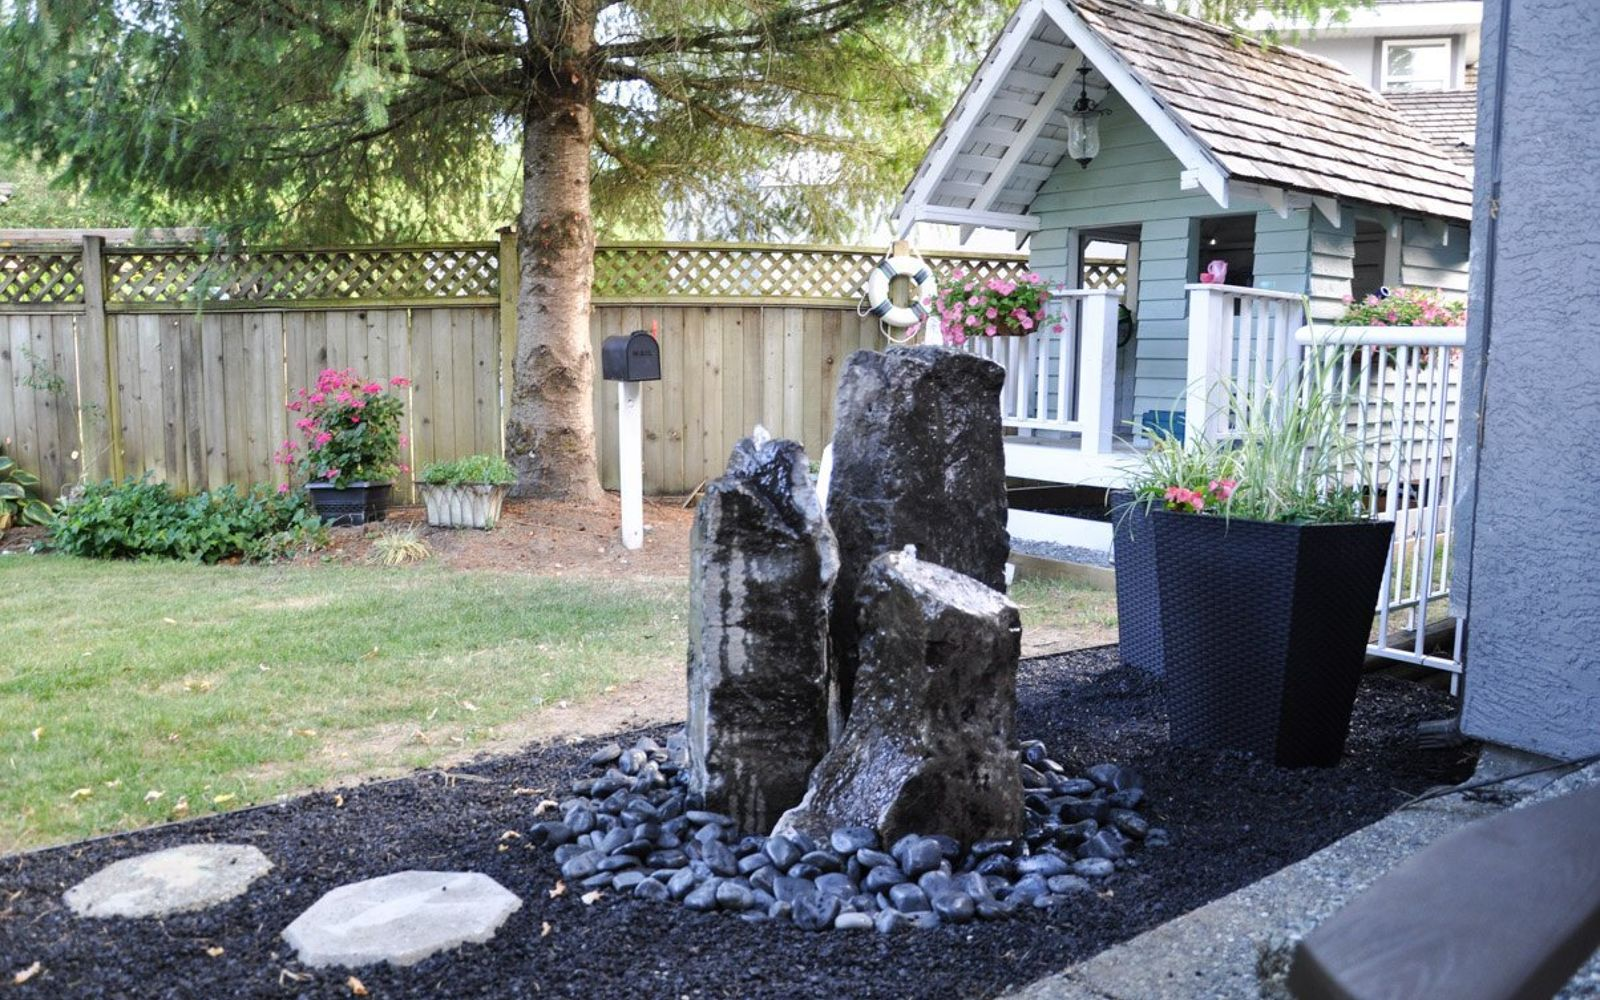 s wait they did what in their backyard , outdoor furniture, outdoor living, Set up a bubbling rocky water feature